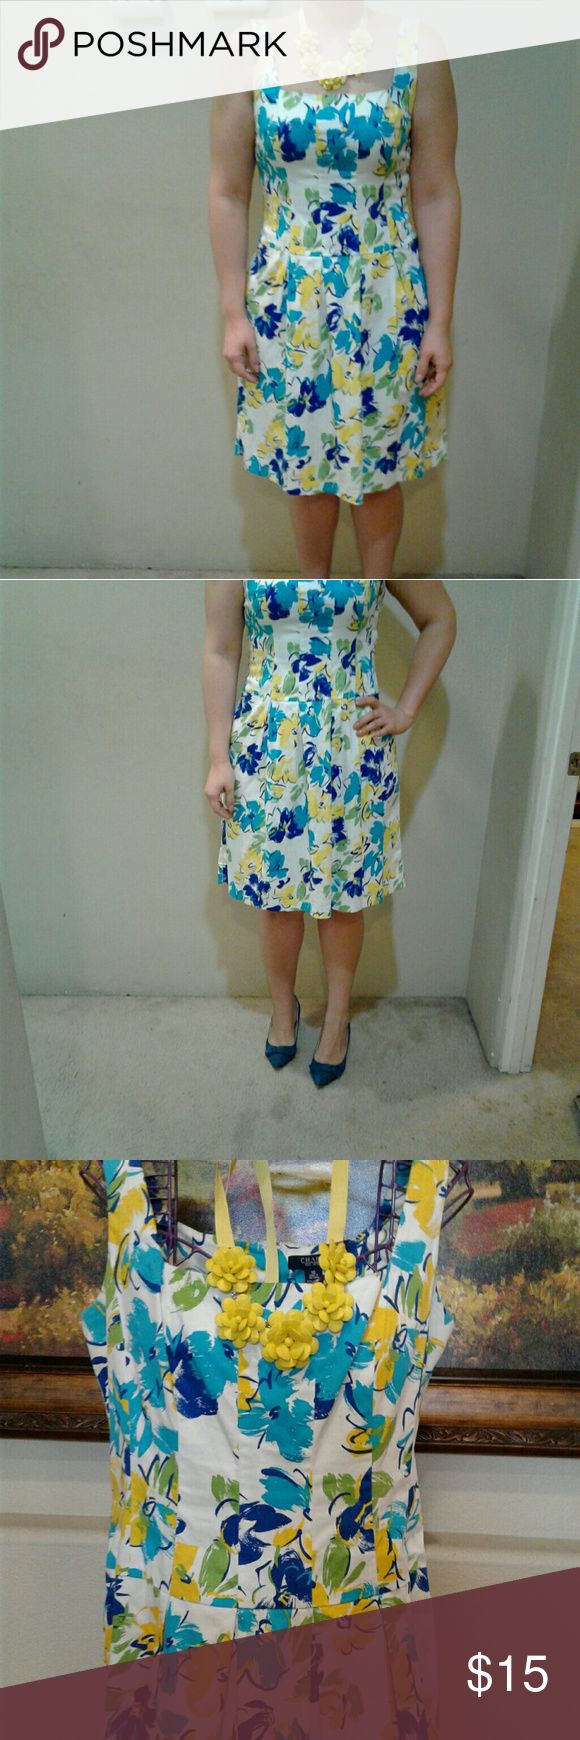 Dress Beautiful floral blue and yellow dress, great for spring time! Chaps Dresses Midi